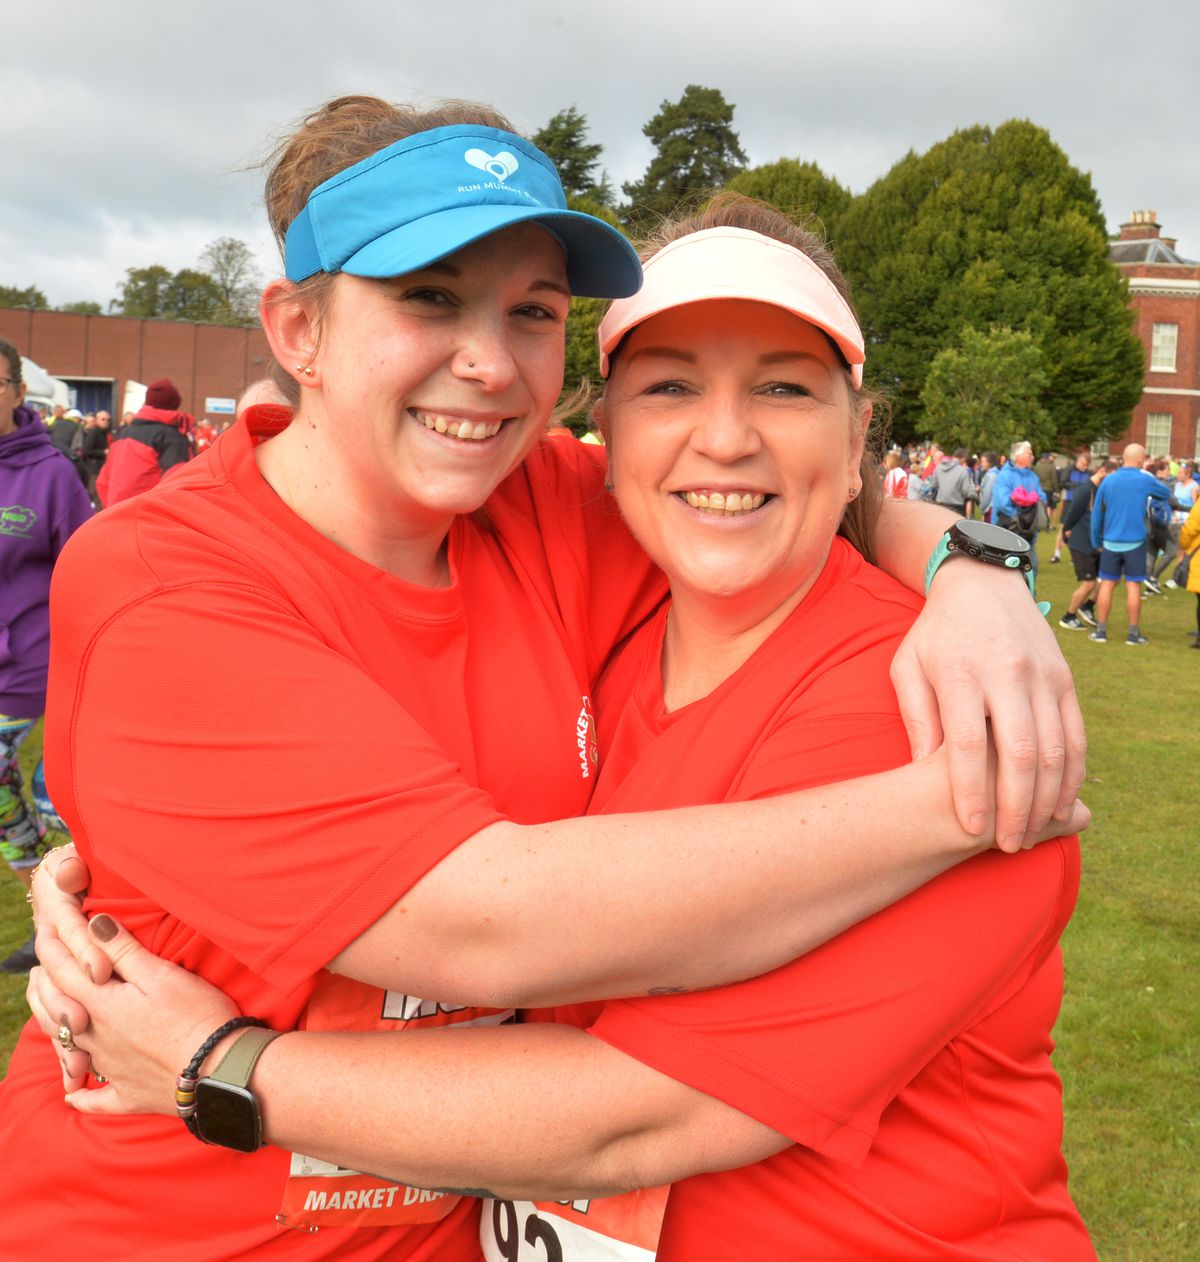 Claire Nutt, left, and Michele Smith, both of Market Drayton